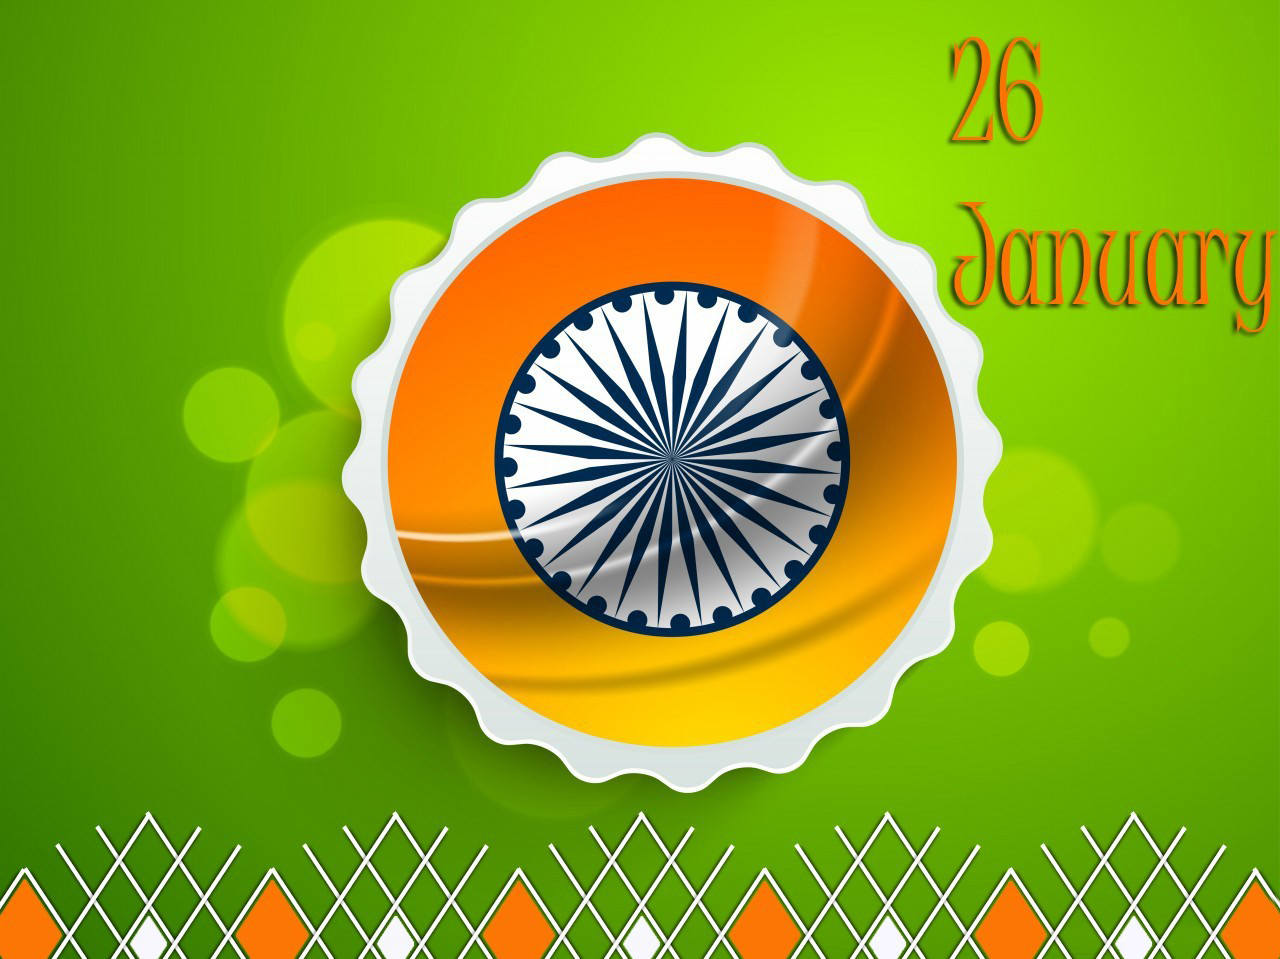 Hd 26 January Republic Day Images Download Happy Republic Day